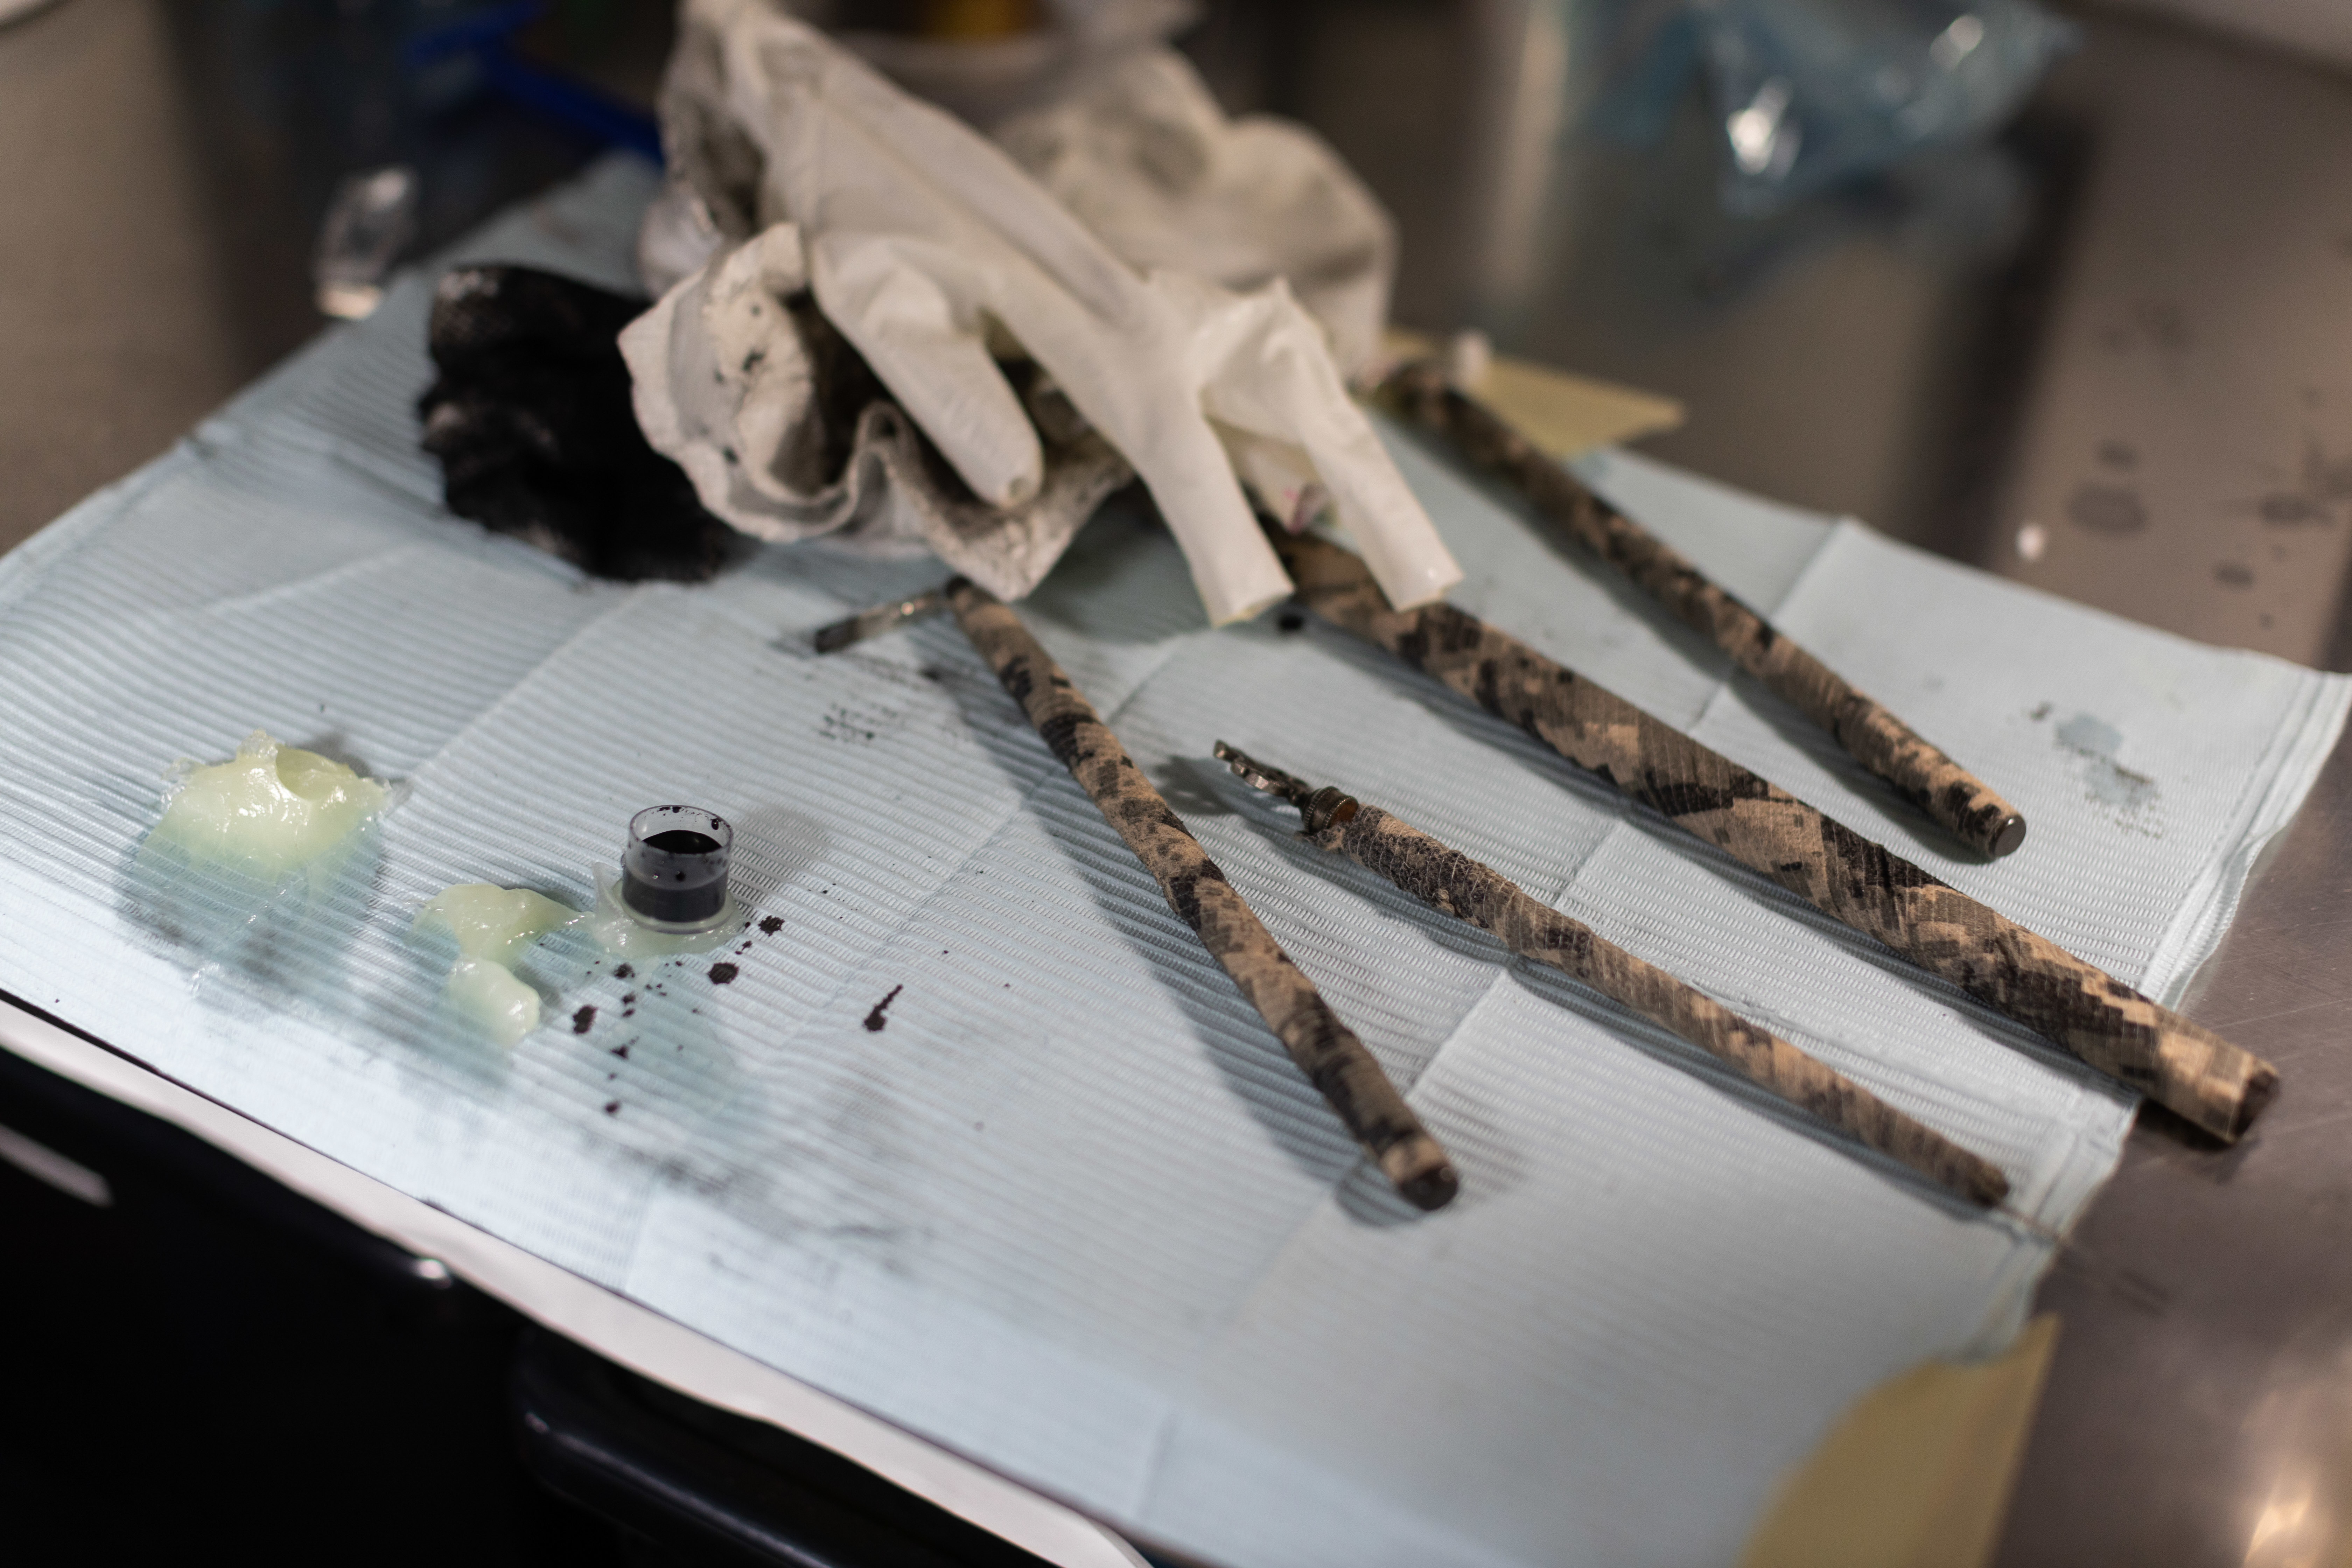 Batok is traditionally done using tools made from bamboo, the thorn of a calamansi (Filipino citrus fruit) tree and ink made from charcoal scraped from the exterior of a cooking pot. Landicho has updated his tools to meet local health regulations. (Gian-Paolo Mendoza/CBC)